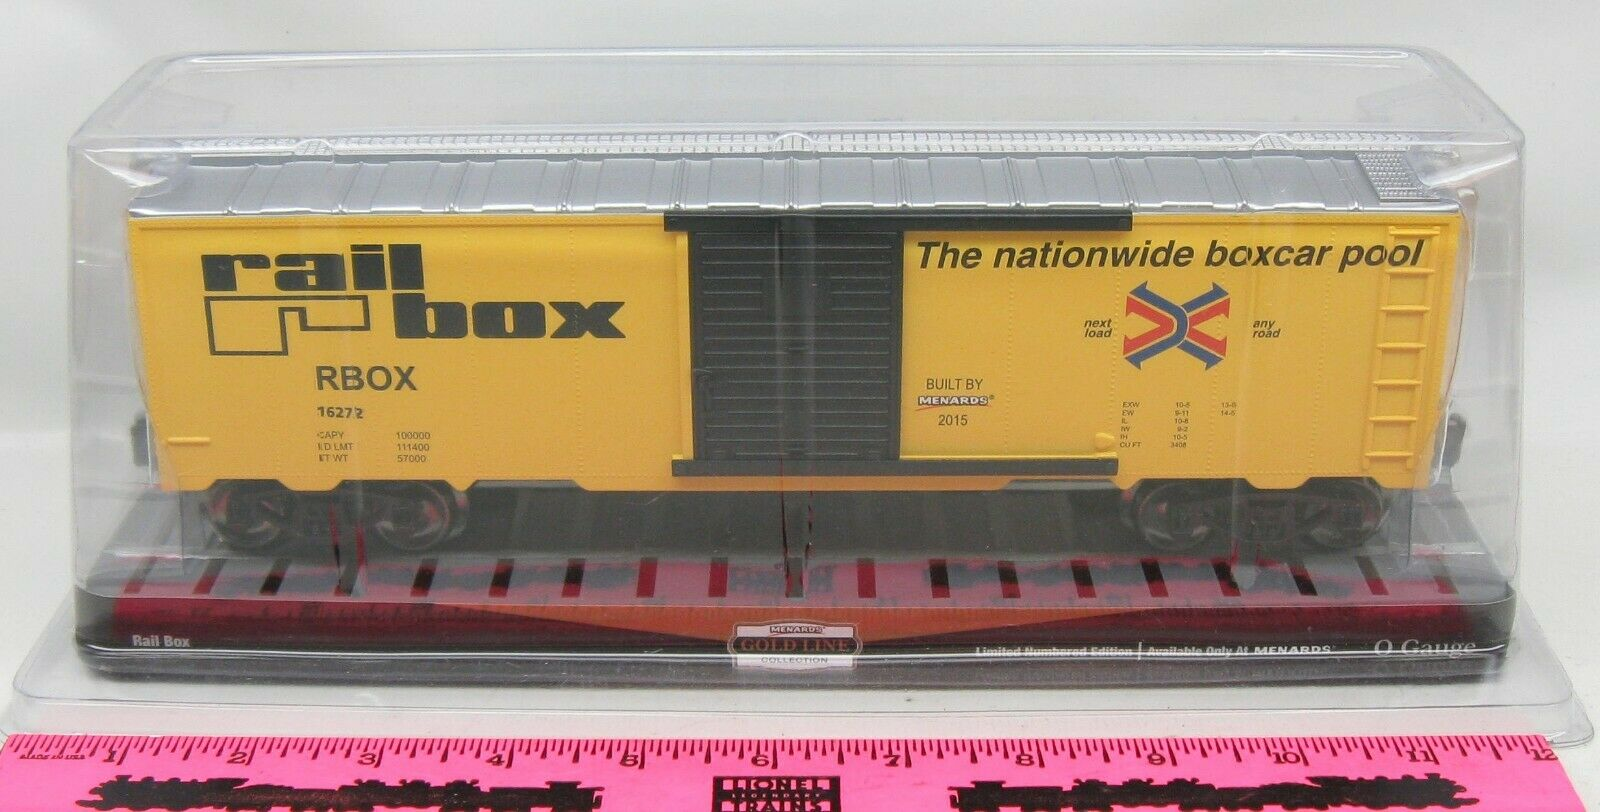 Menards Box O Gauge Boxcar Rail nfyttl4578-Freight Cars